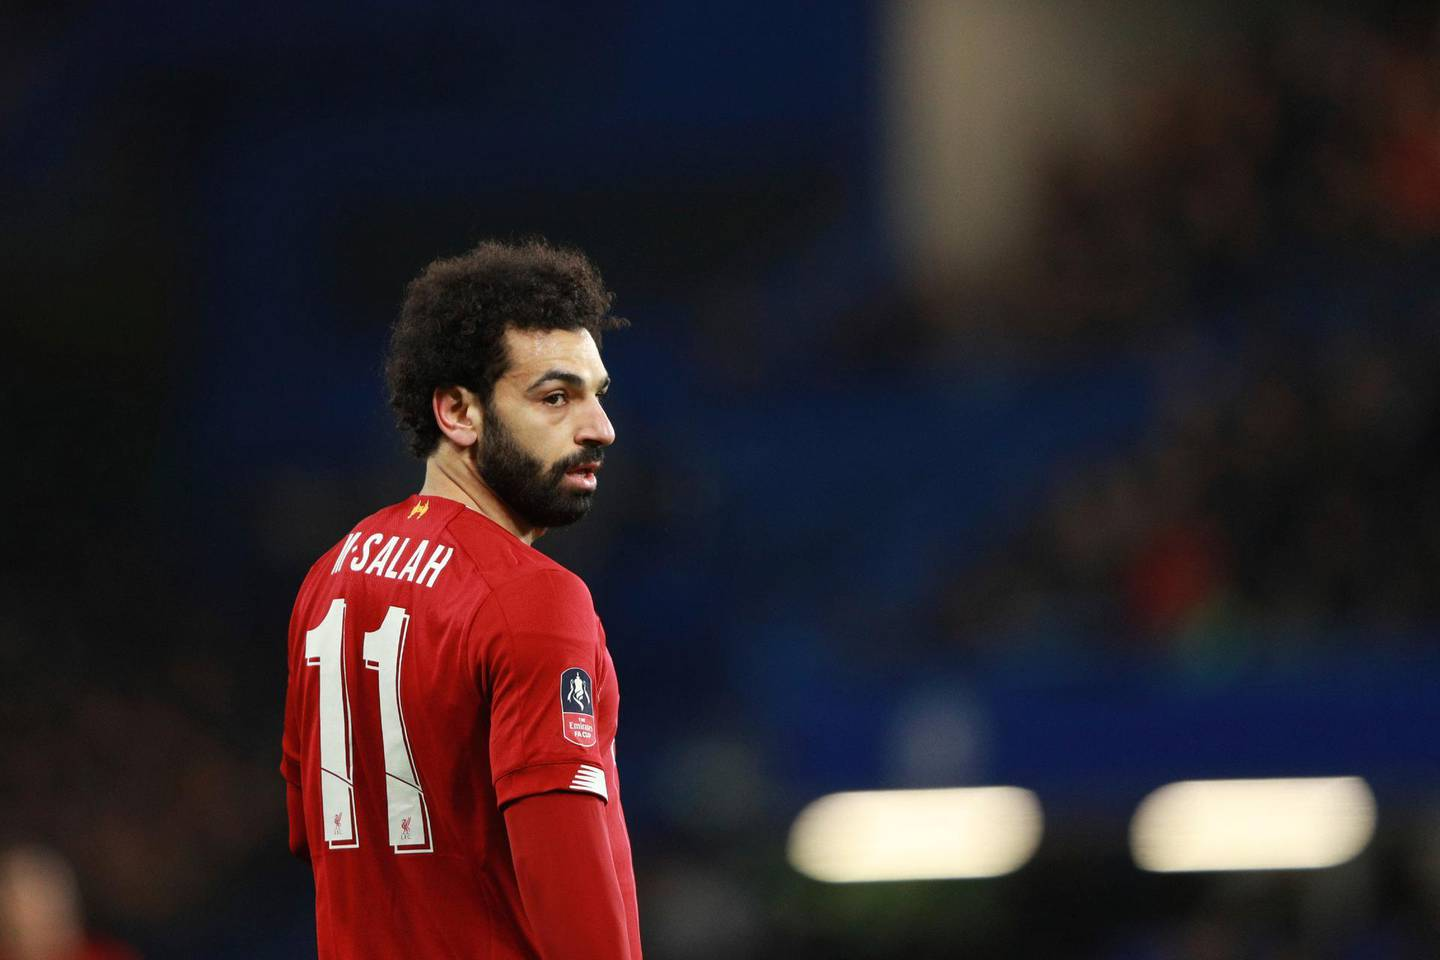 Liverpool's Mohamed Salah reacts during the English FA Cup fifth round soccer match between Chelsea and Liverpool at Stamford Bridge stadium in London Tuesday, March 3, 2020. (AP Photo/Ian Walton)